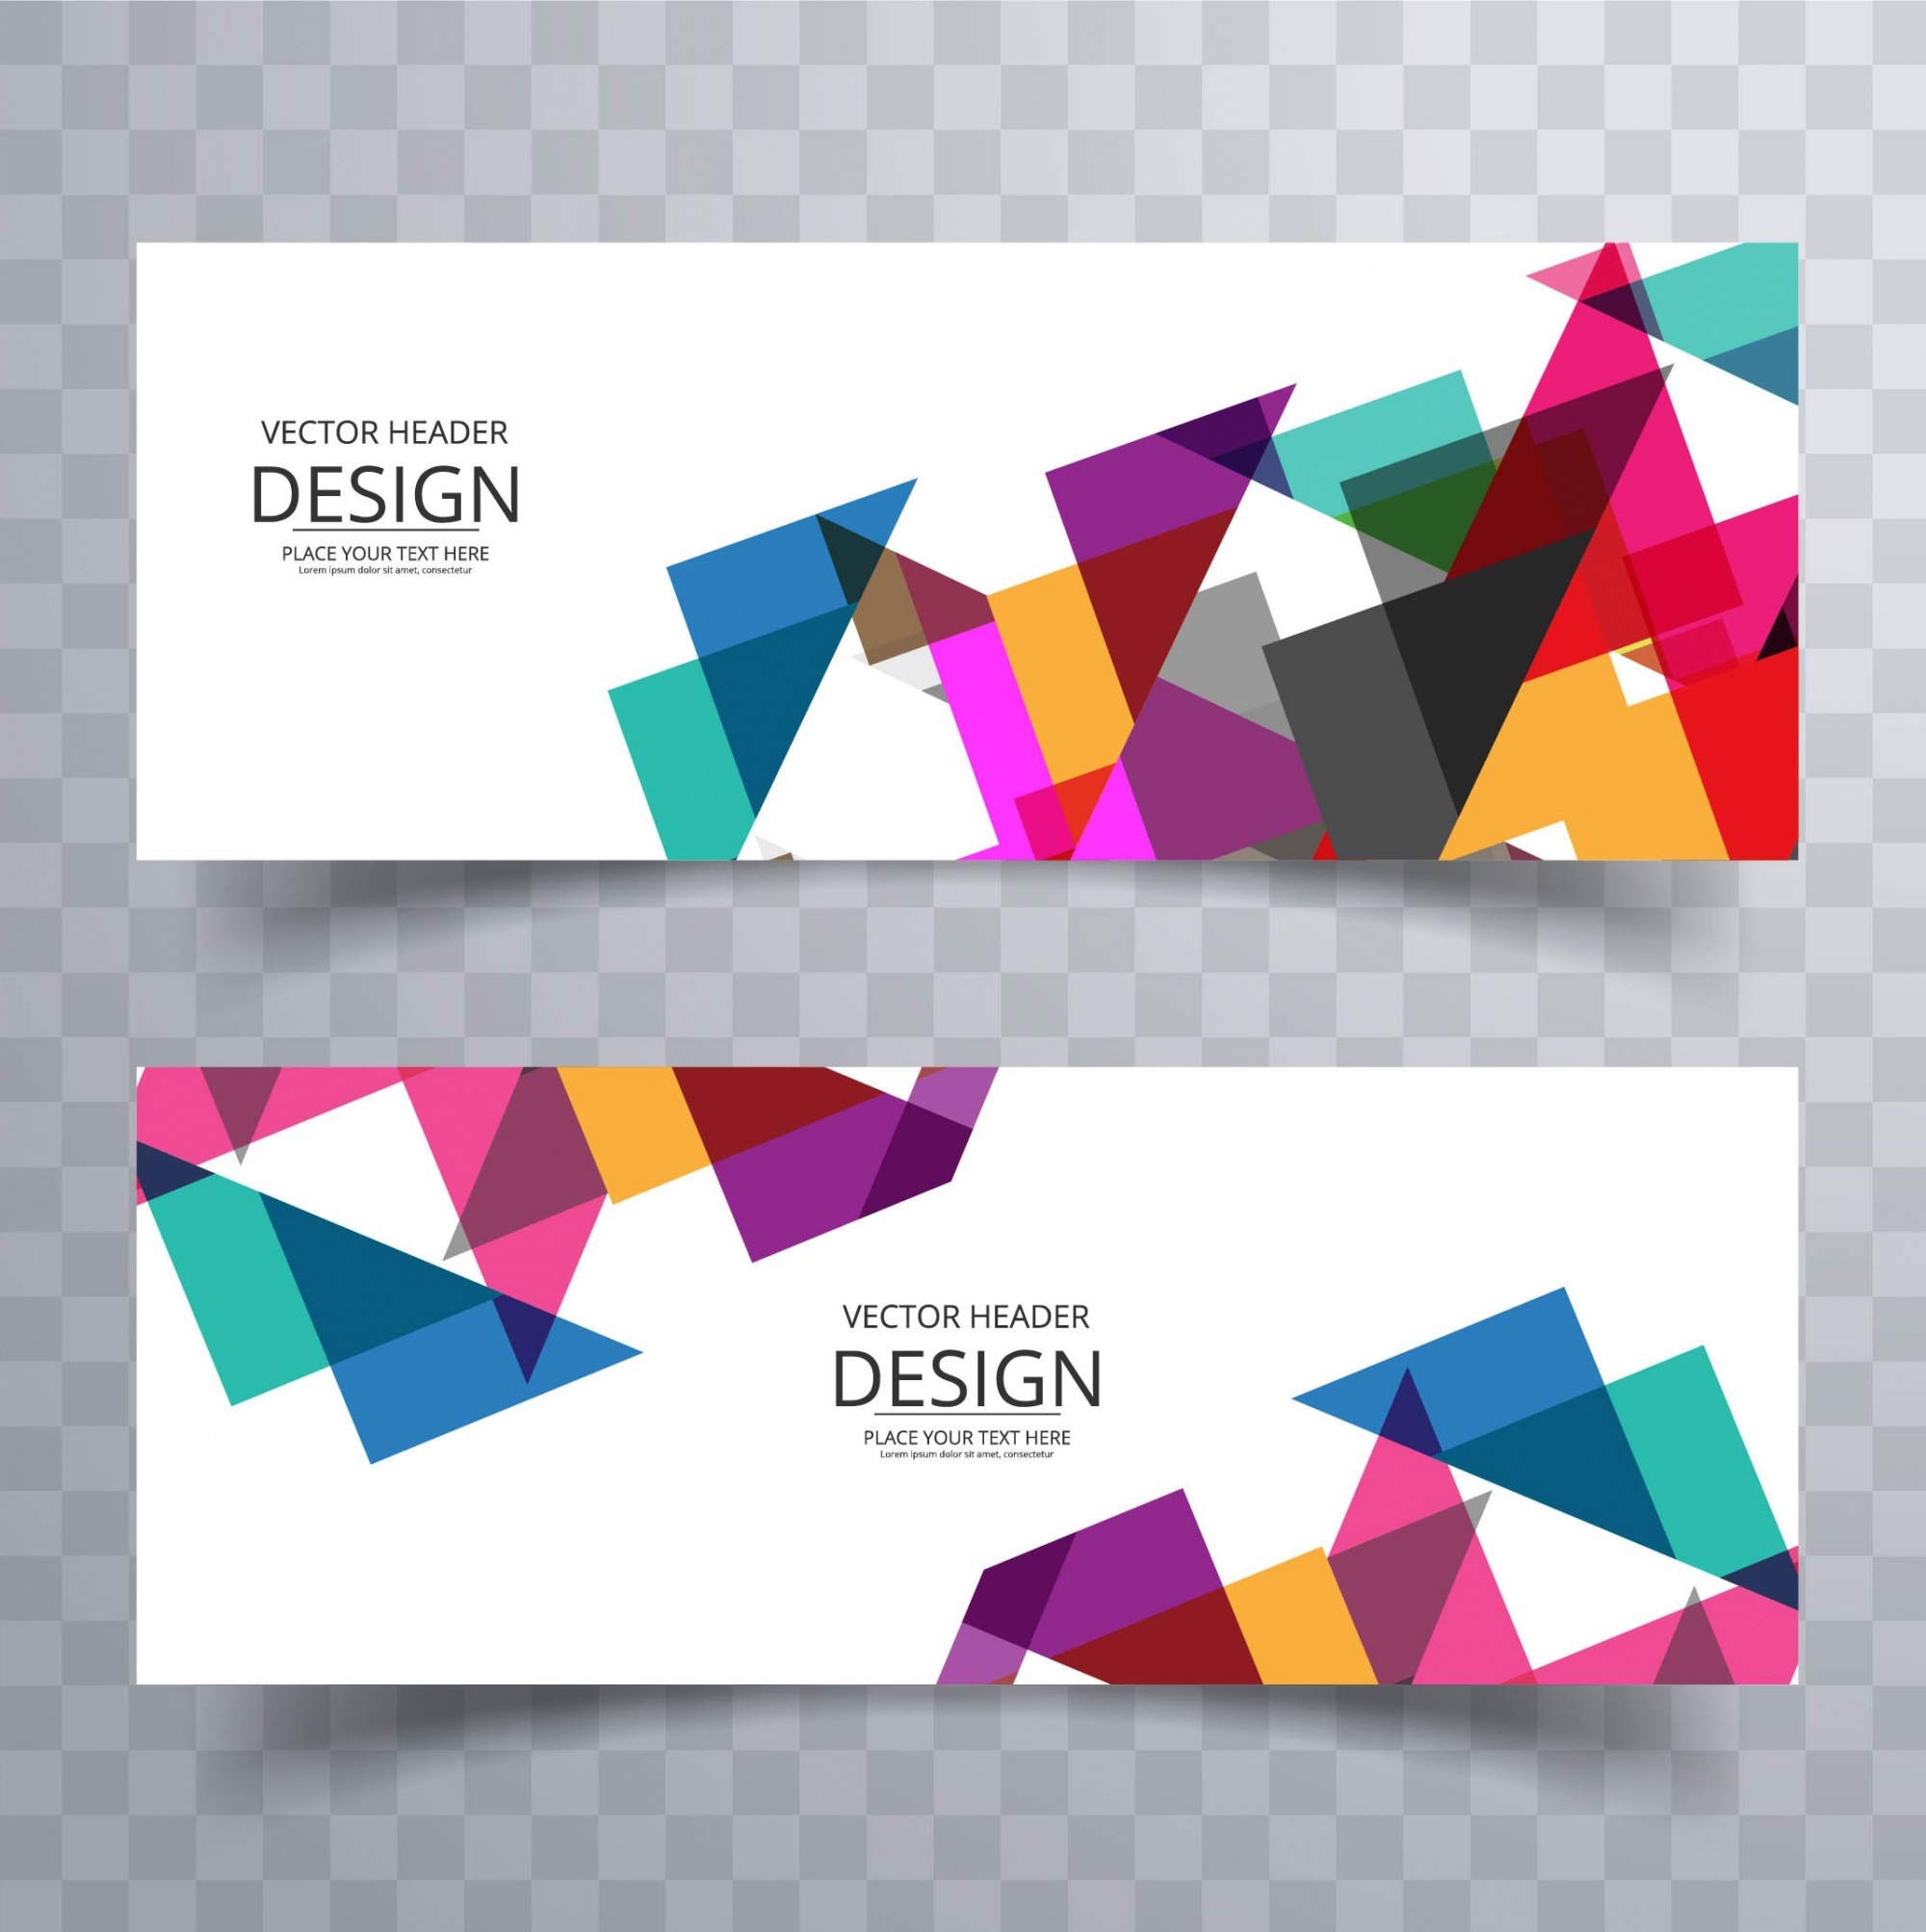 Two colorful banners with geometric shapes